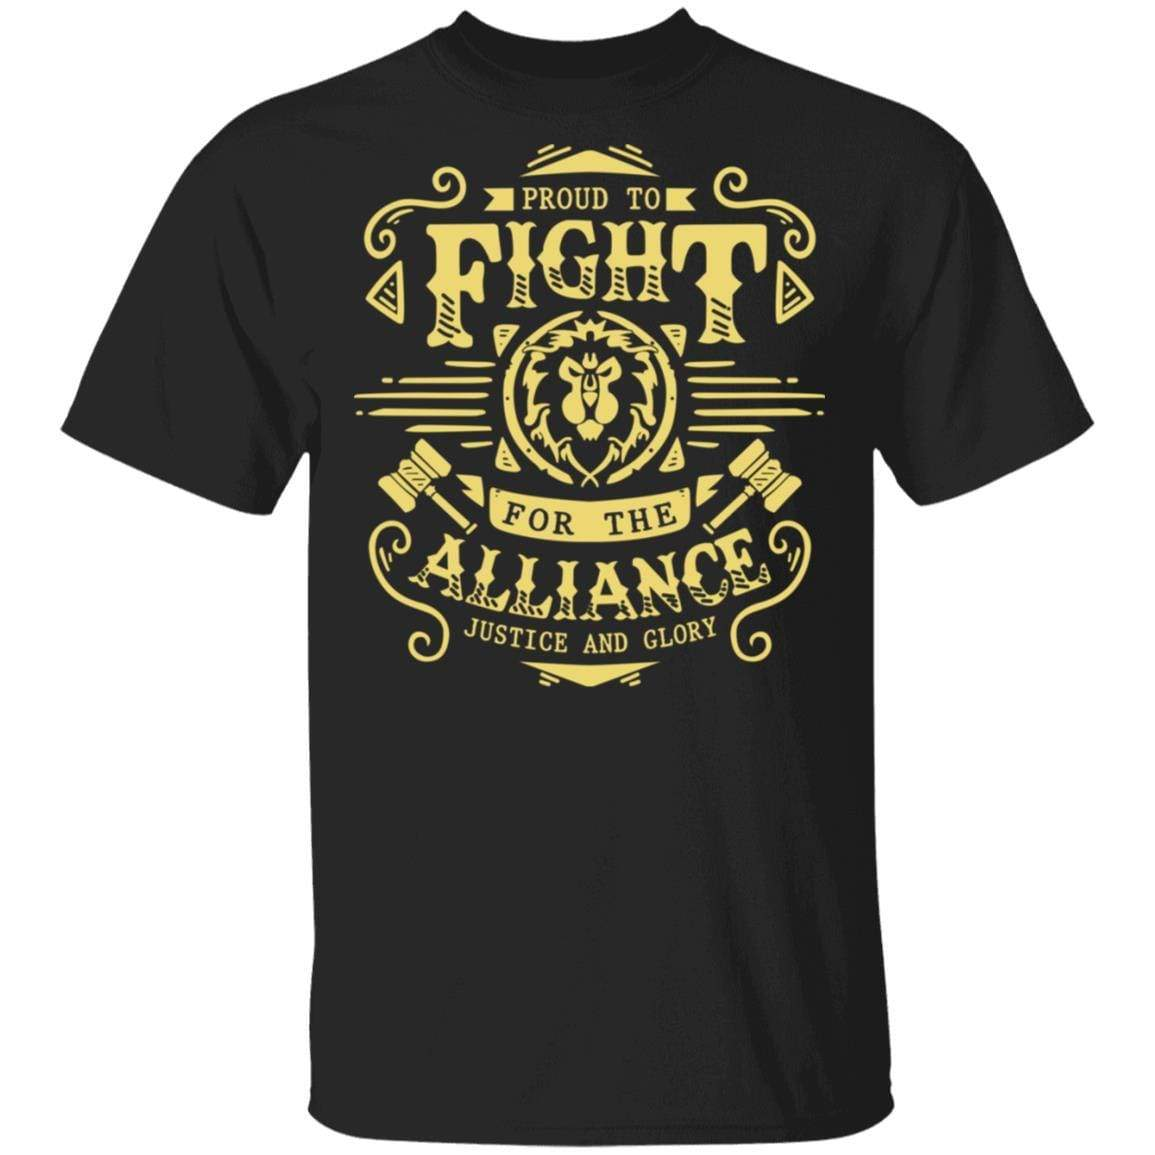 Proud To Fight For The Alliance Justice And Glory T-Shirts, Hoodies 1049-9953-88445022-48144 - Tee Ript